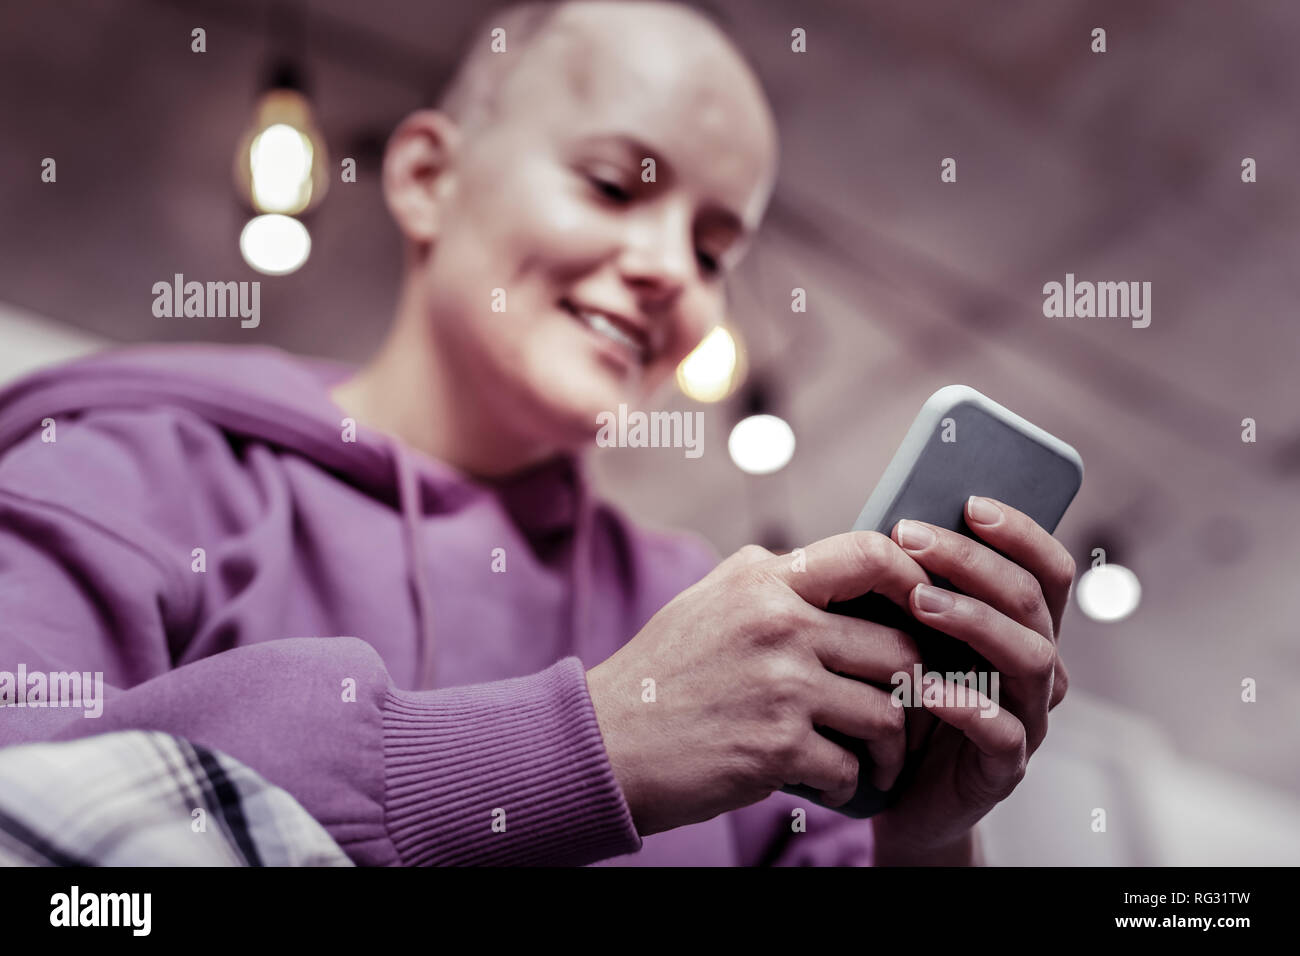 Cheerful bold woman keeping smile on her face - Stock Image